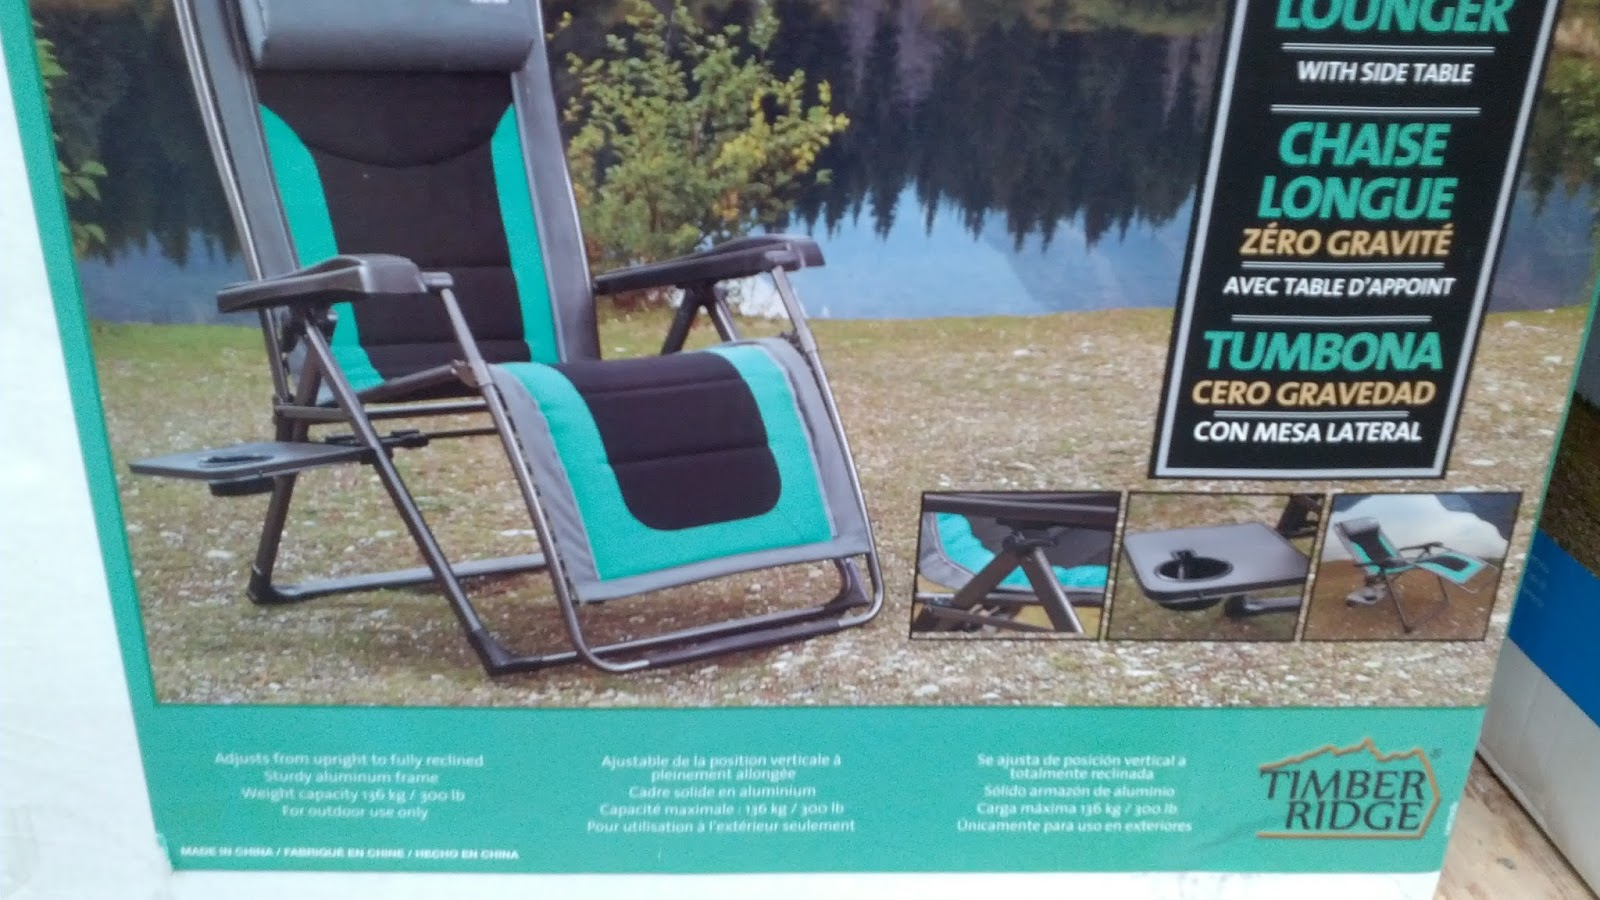 Timber Ridge Zero Gravity Chair And Lounger With Side Table Costco